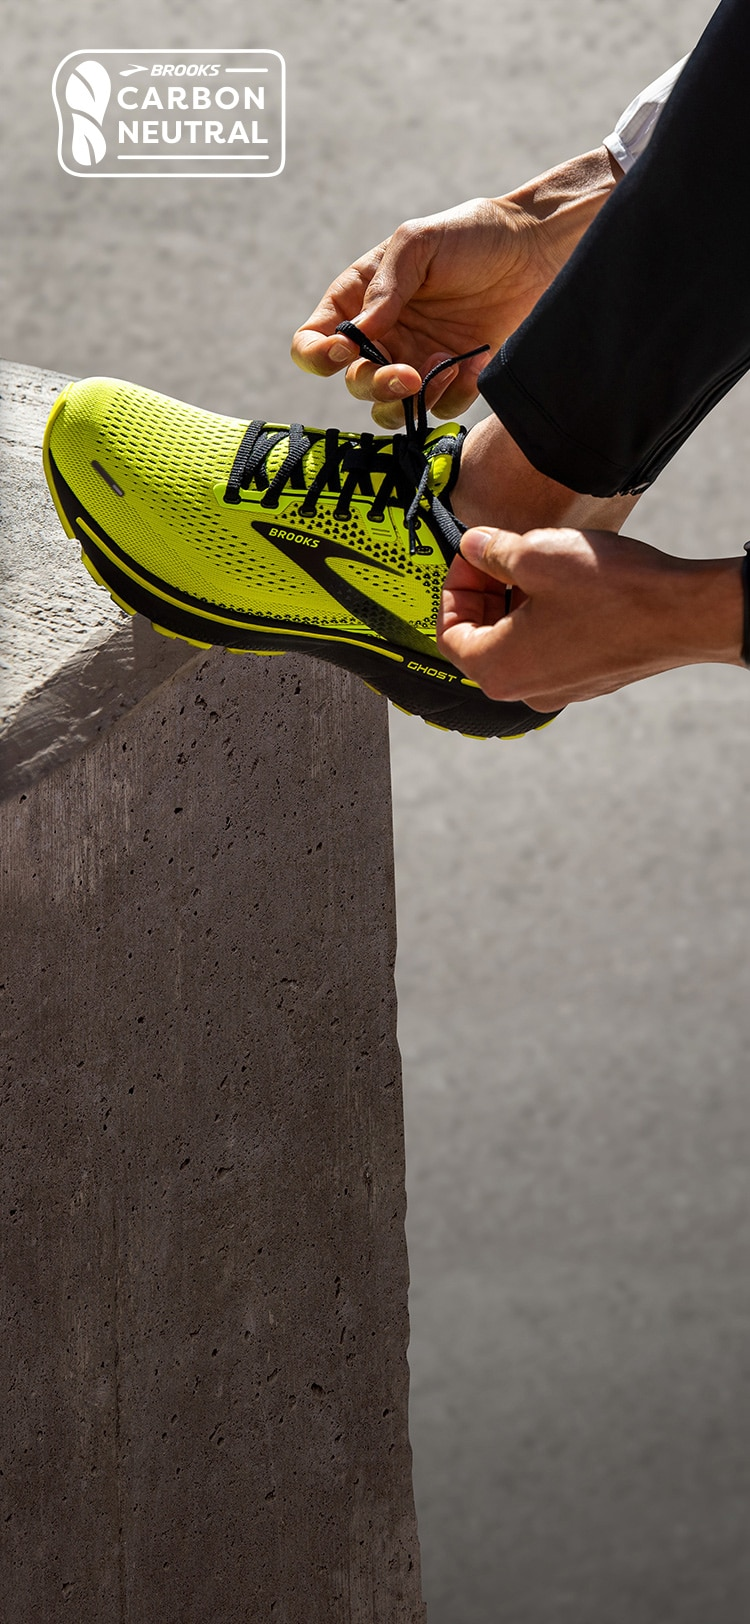 A close up of the foot of someone lacing up the Ghost 14.